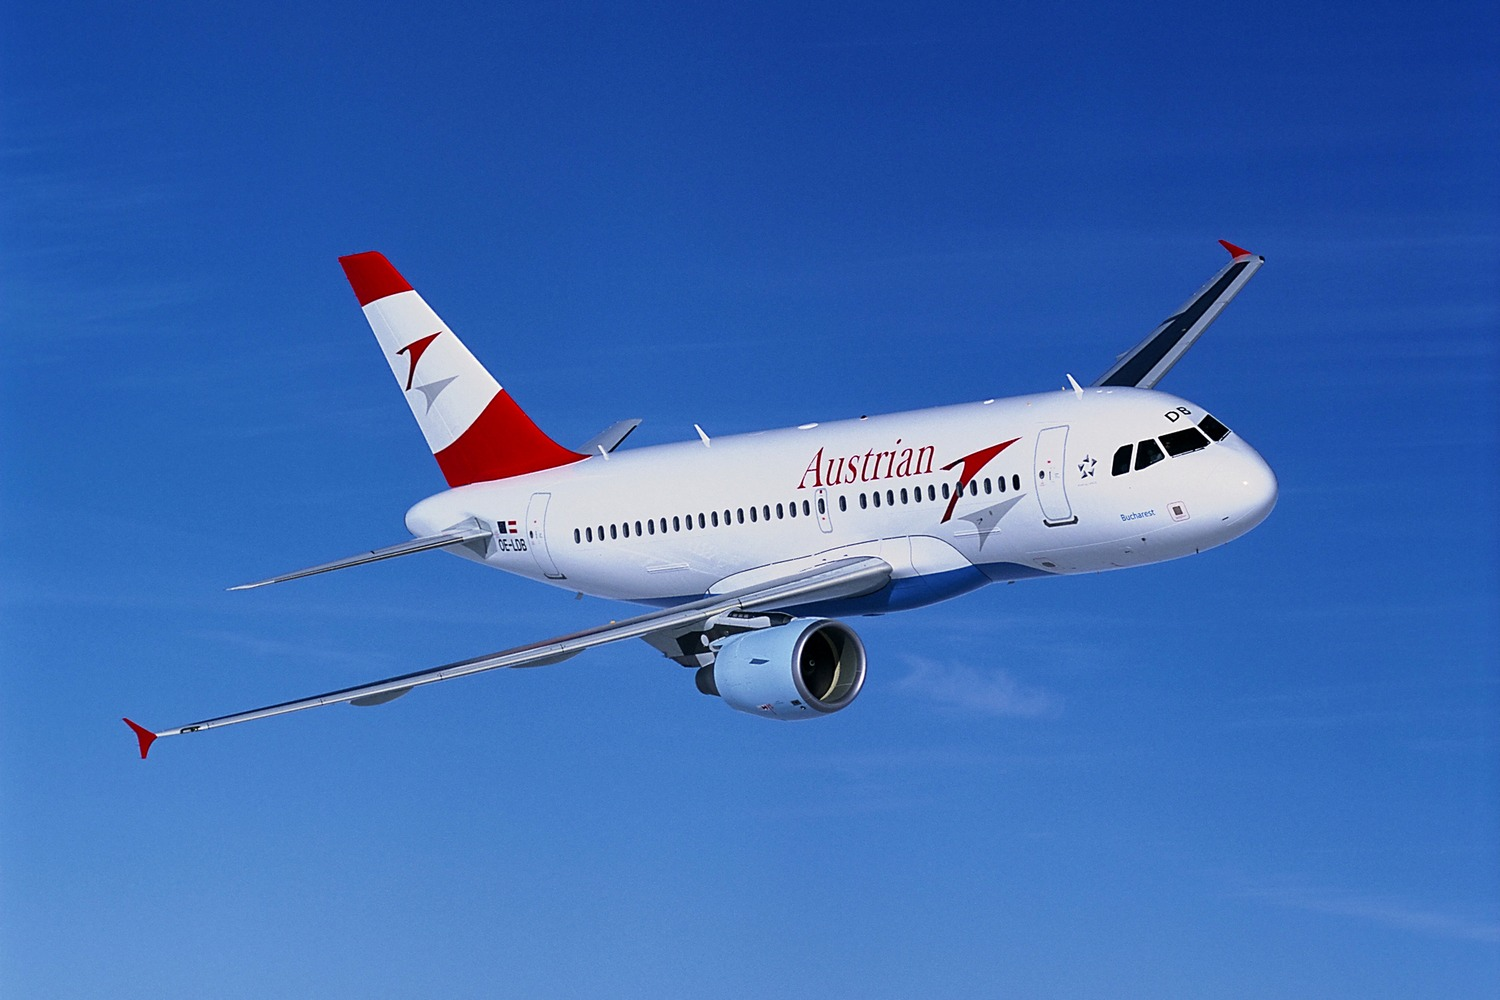 Austrian air line (Austrian Airlines). Official site.